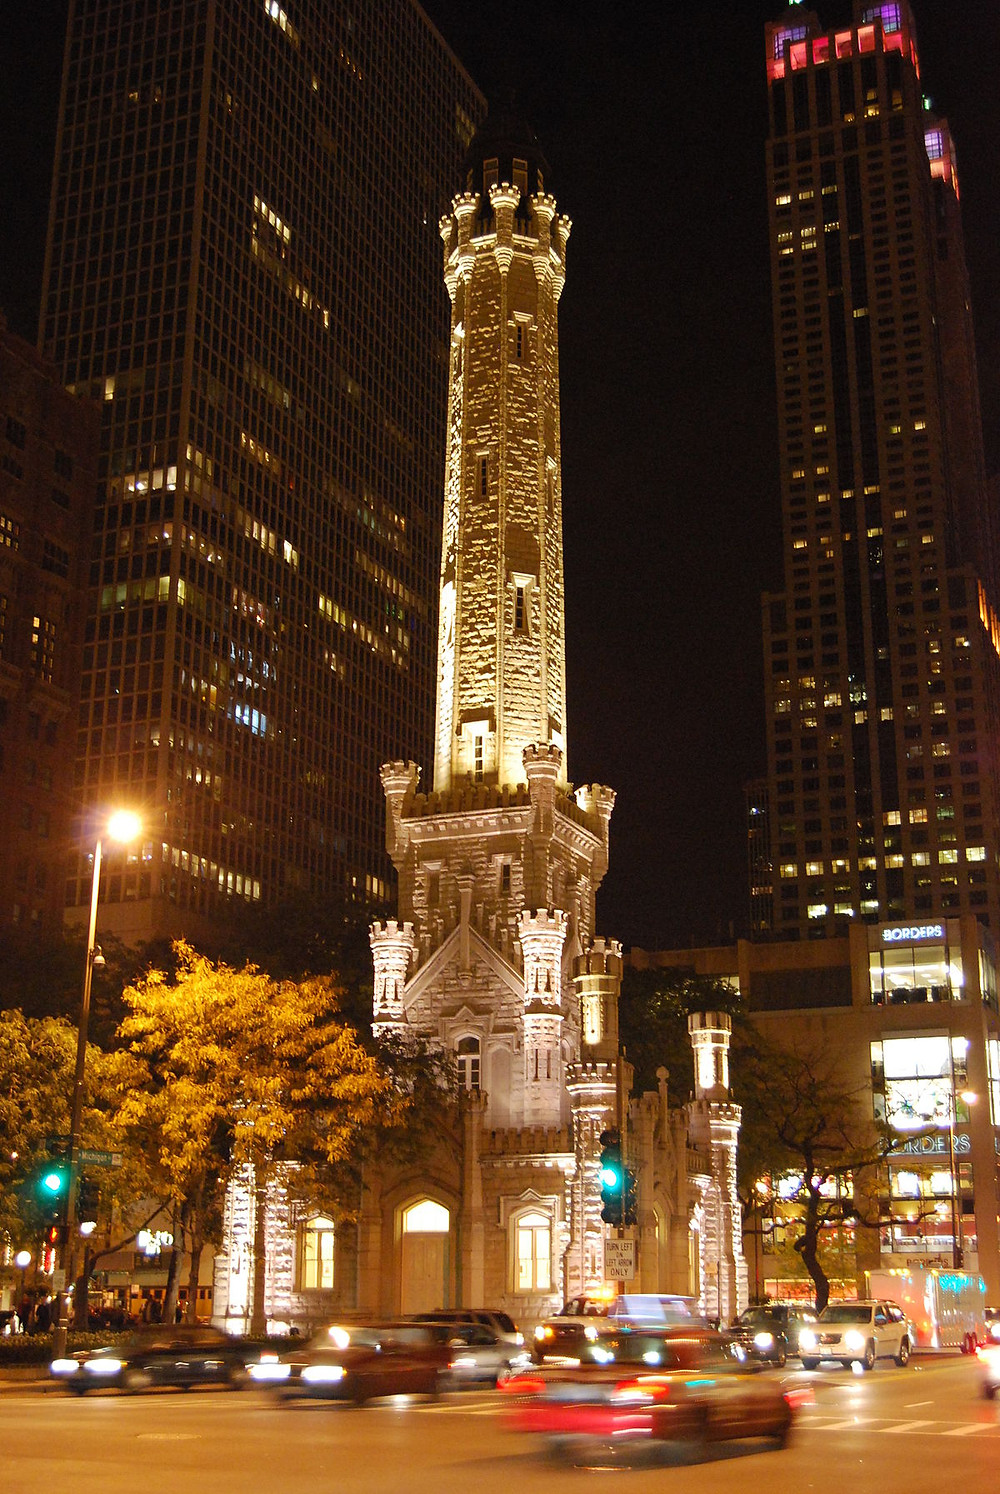 The Water Tower, Wikipedia image